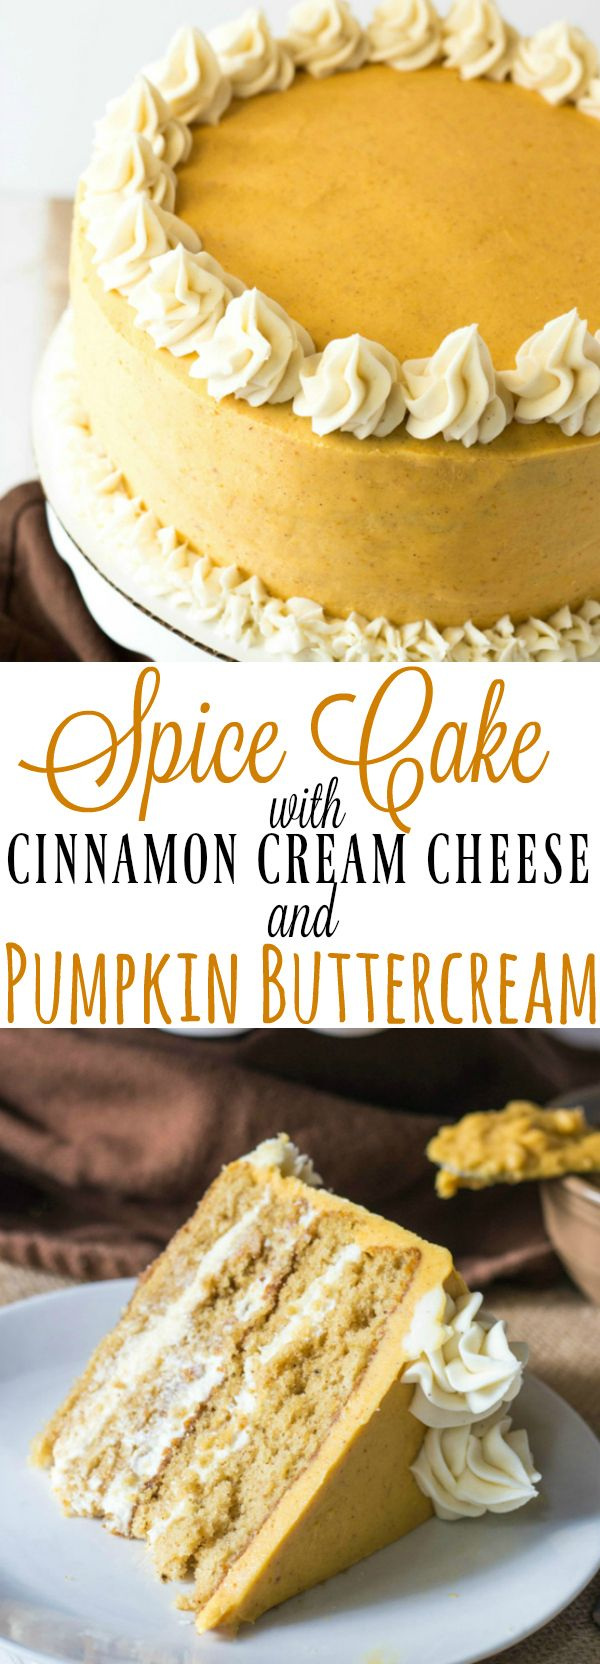 Delight in Fall flavors with this tasty Spice Cake with Cinnamon Cream Cheese and Pumpkin Buttercream that will make your taste buds go wild! It's that time of year again folks!! PUMPKIN time! I probably could have waited a bit longer to roll out the pumpkin recipes, but with the[Read more]